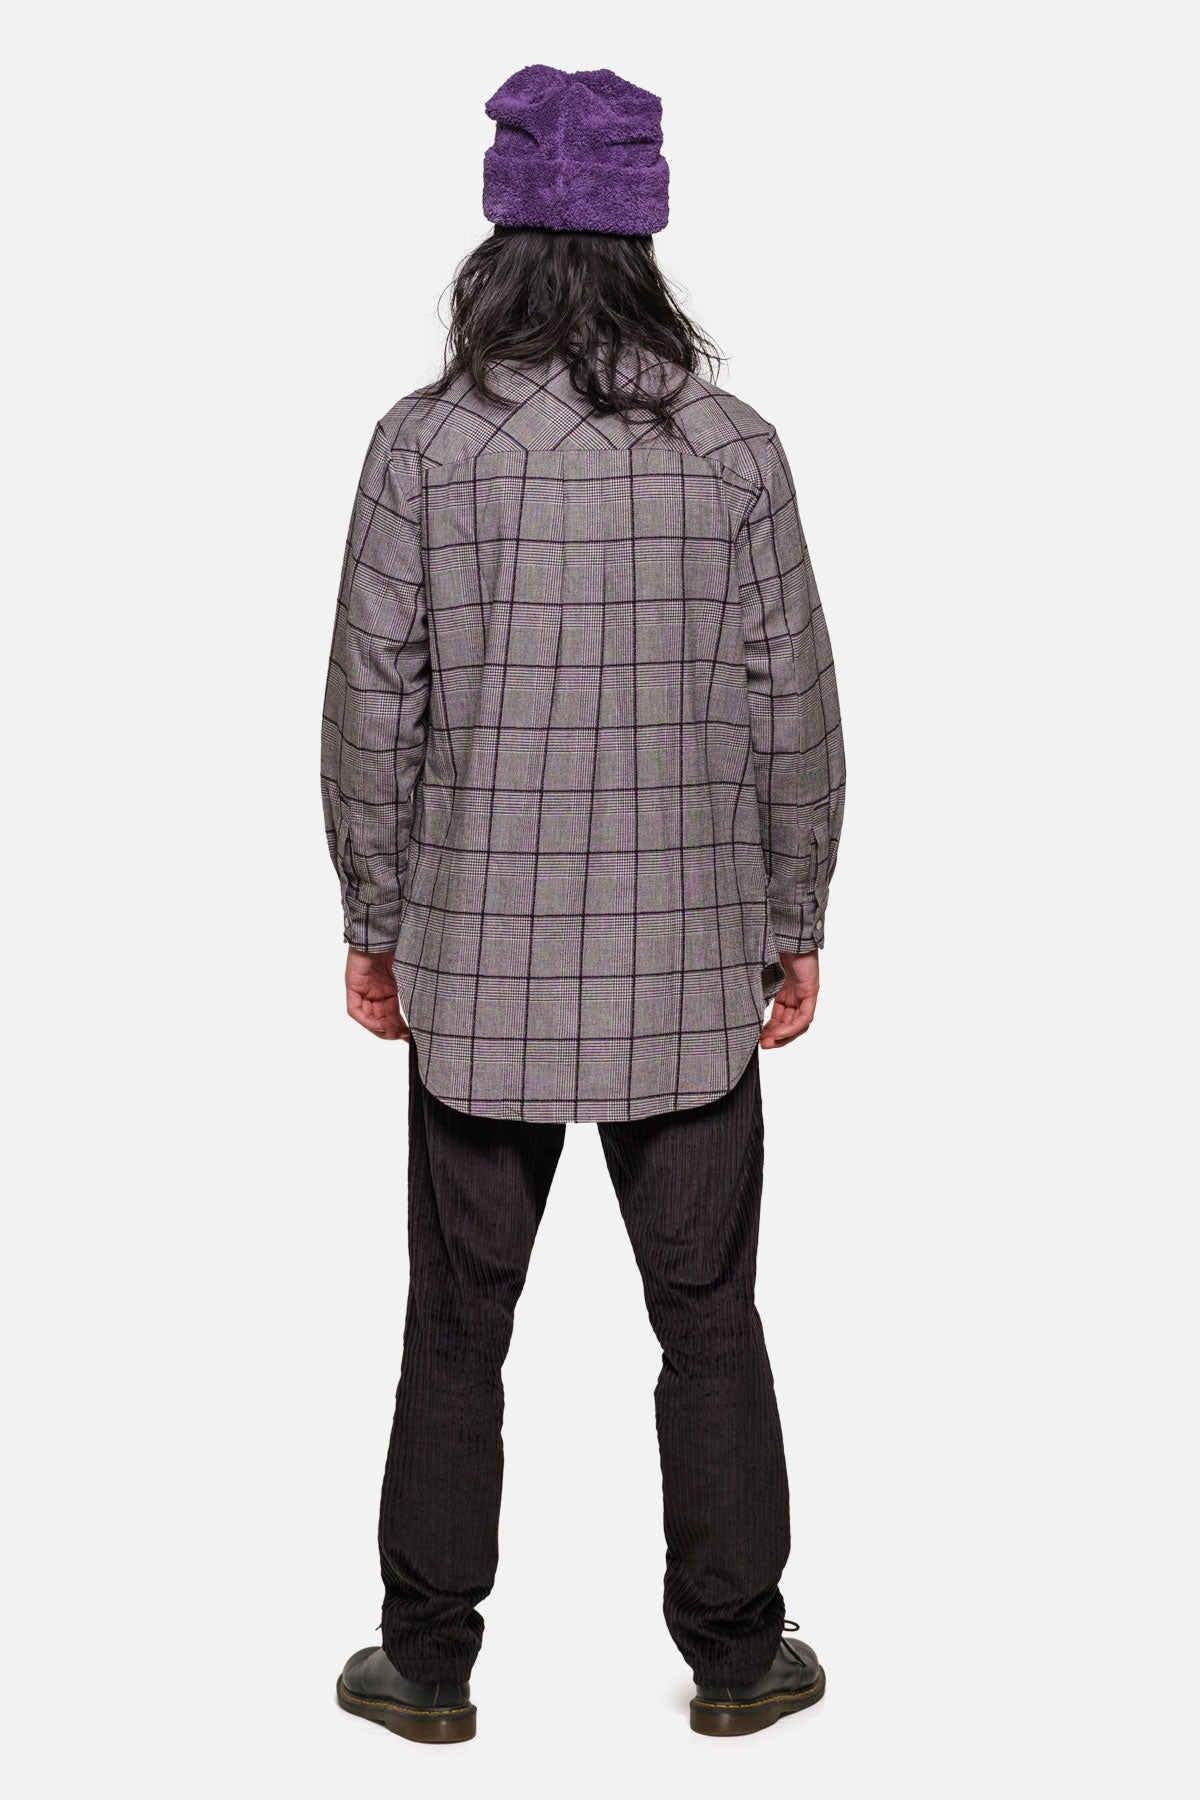 SHOREDITCH TUNIC IN BLACK WINDOWPANE PLAID - Fortune Goods